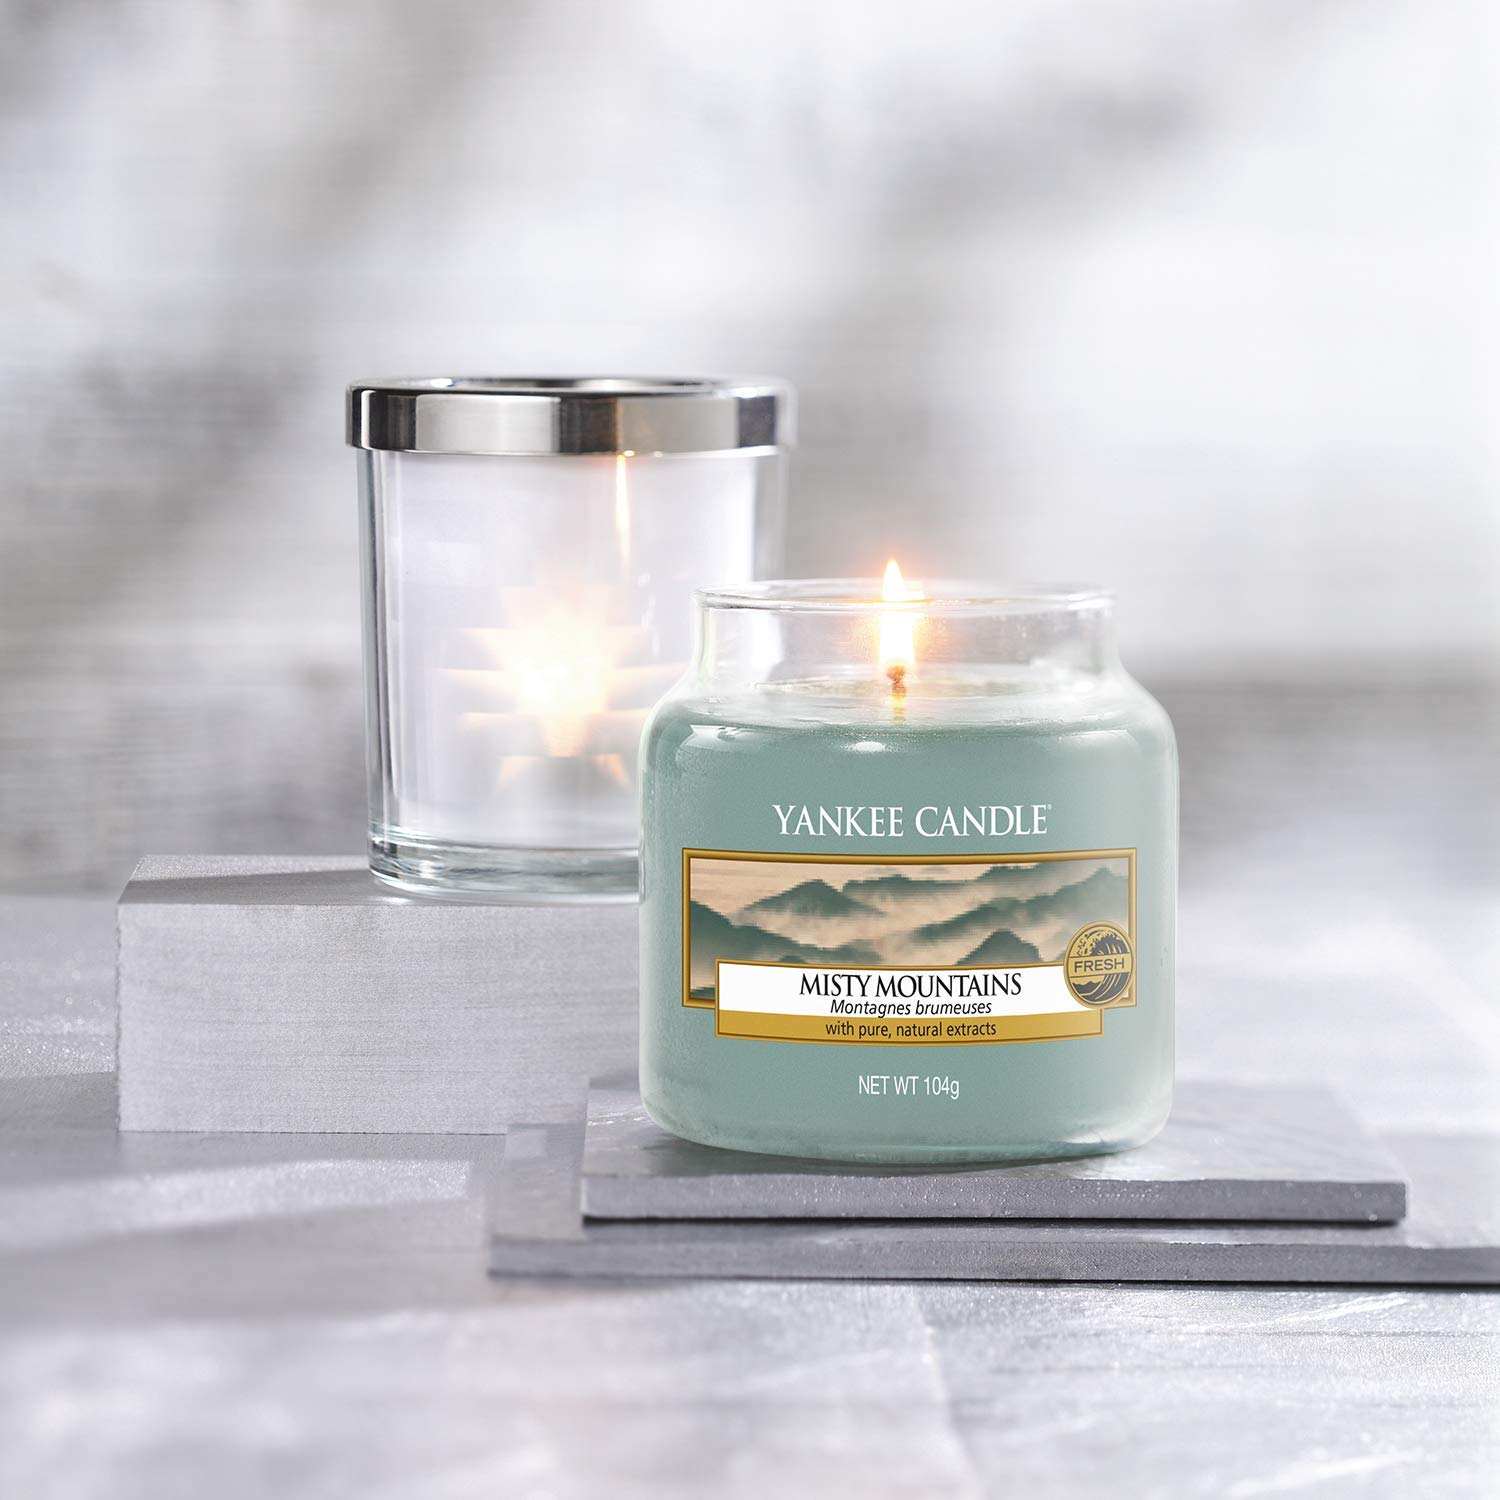 Yankee Candle Small Jar Scented Candle, Misty Mountains, Up to 30 Hours Burn Time for £6.99 now